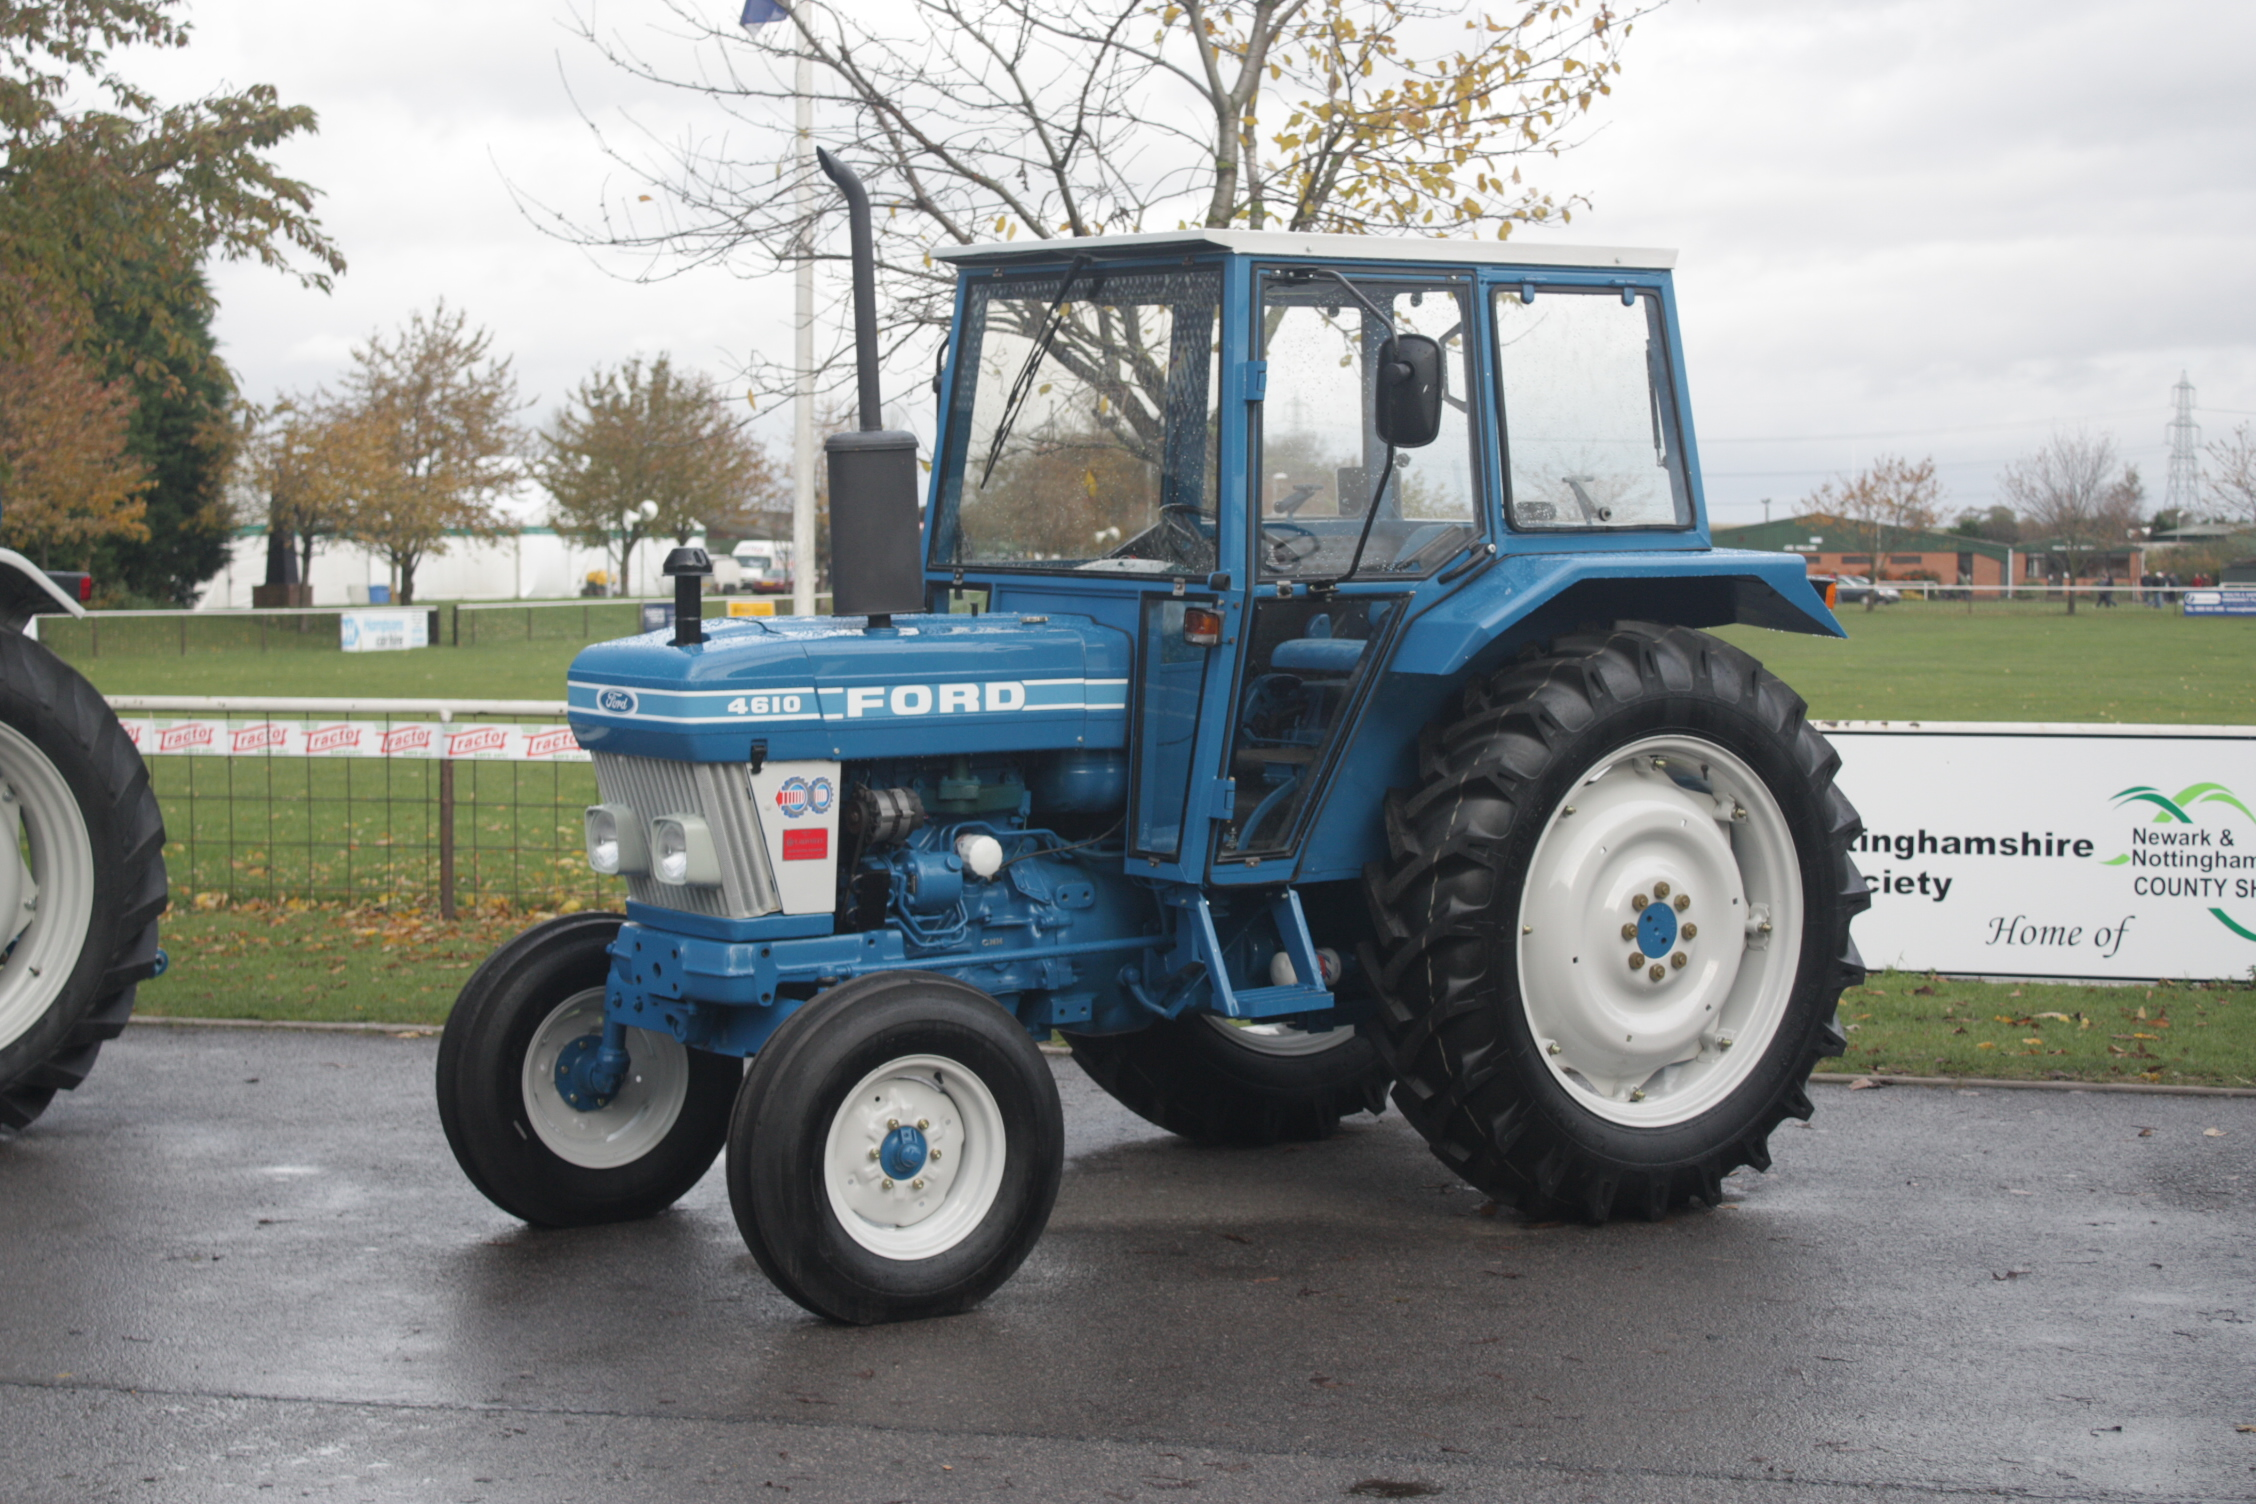 ford 4610 tractor construction plant wiki fandom powered by wikia rh tractors wikia com ford 4610 tractor repair manual ford 4610 tractor workshop manual